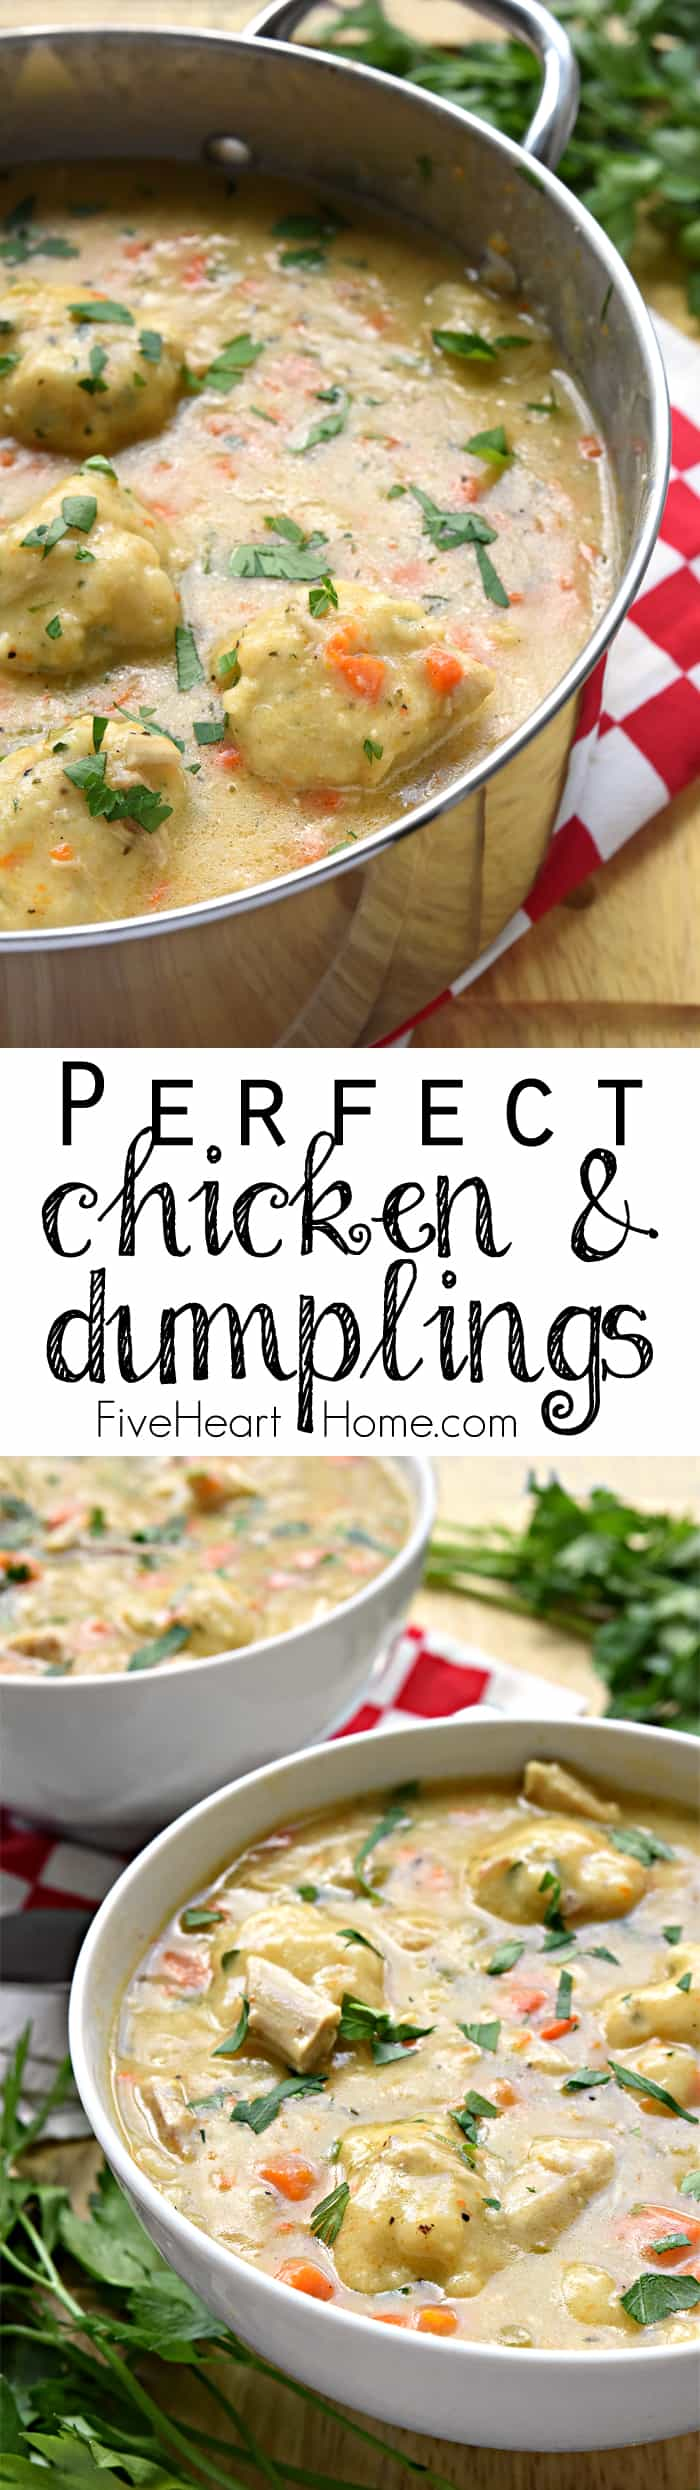 The BEST Chicken and Dumplings ~ a comfort food classic of flavorful broth, tender chicken, sweet carrots, fresh herbs, & fluffy homemade dumplings! | FiveHeartHome.com #chickenanddumplings